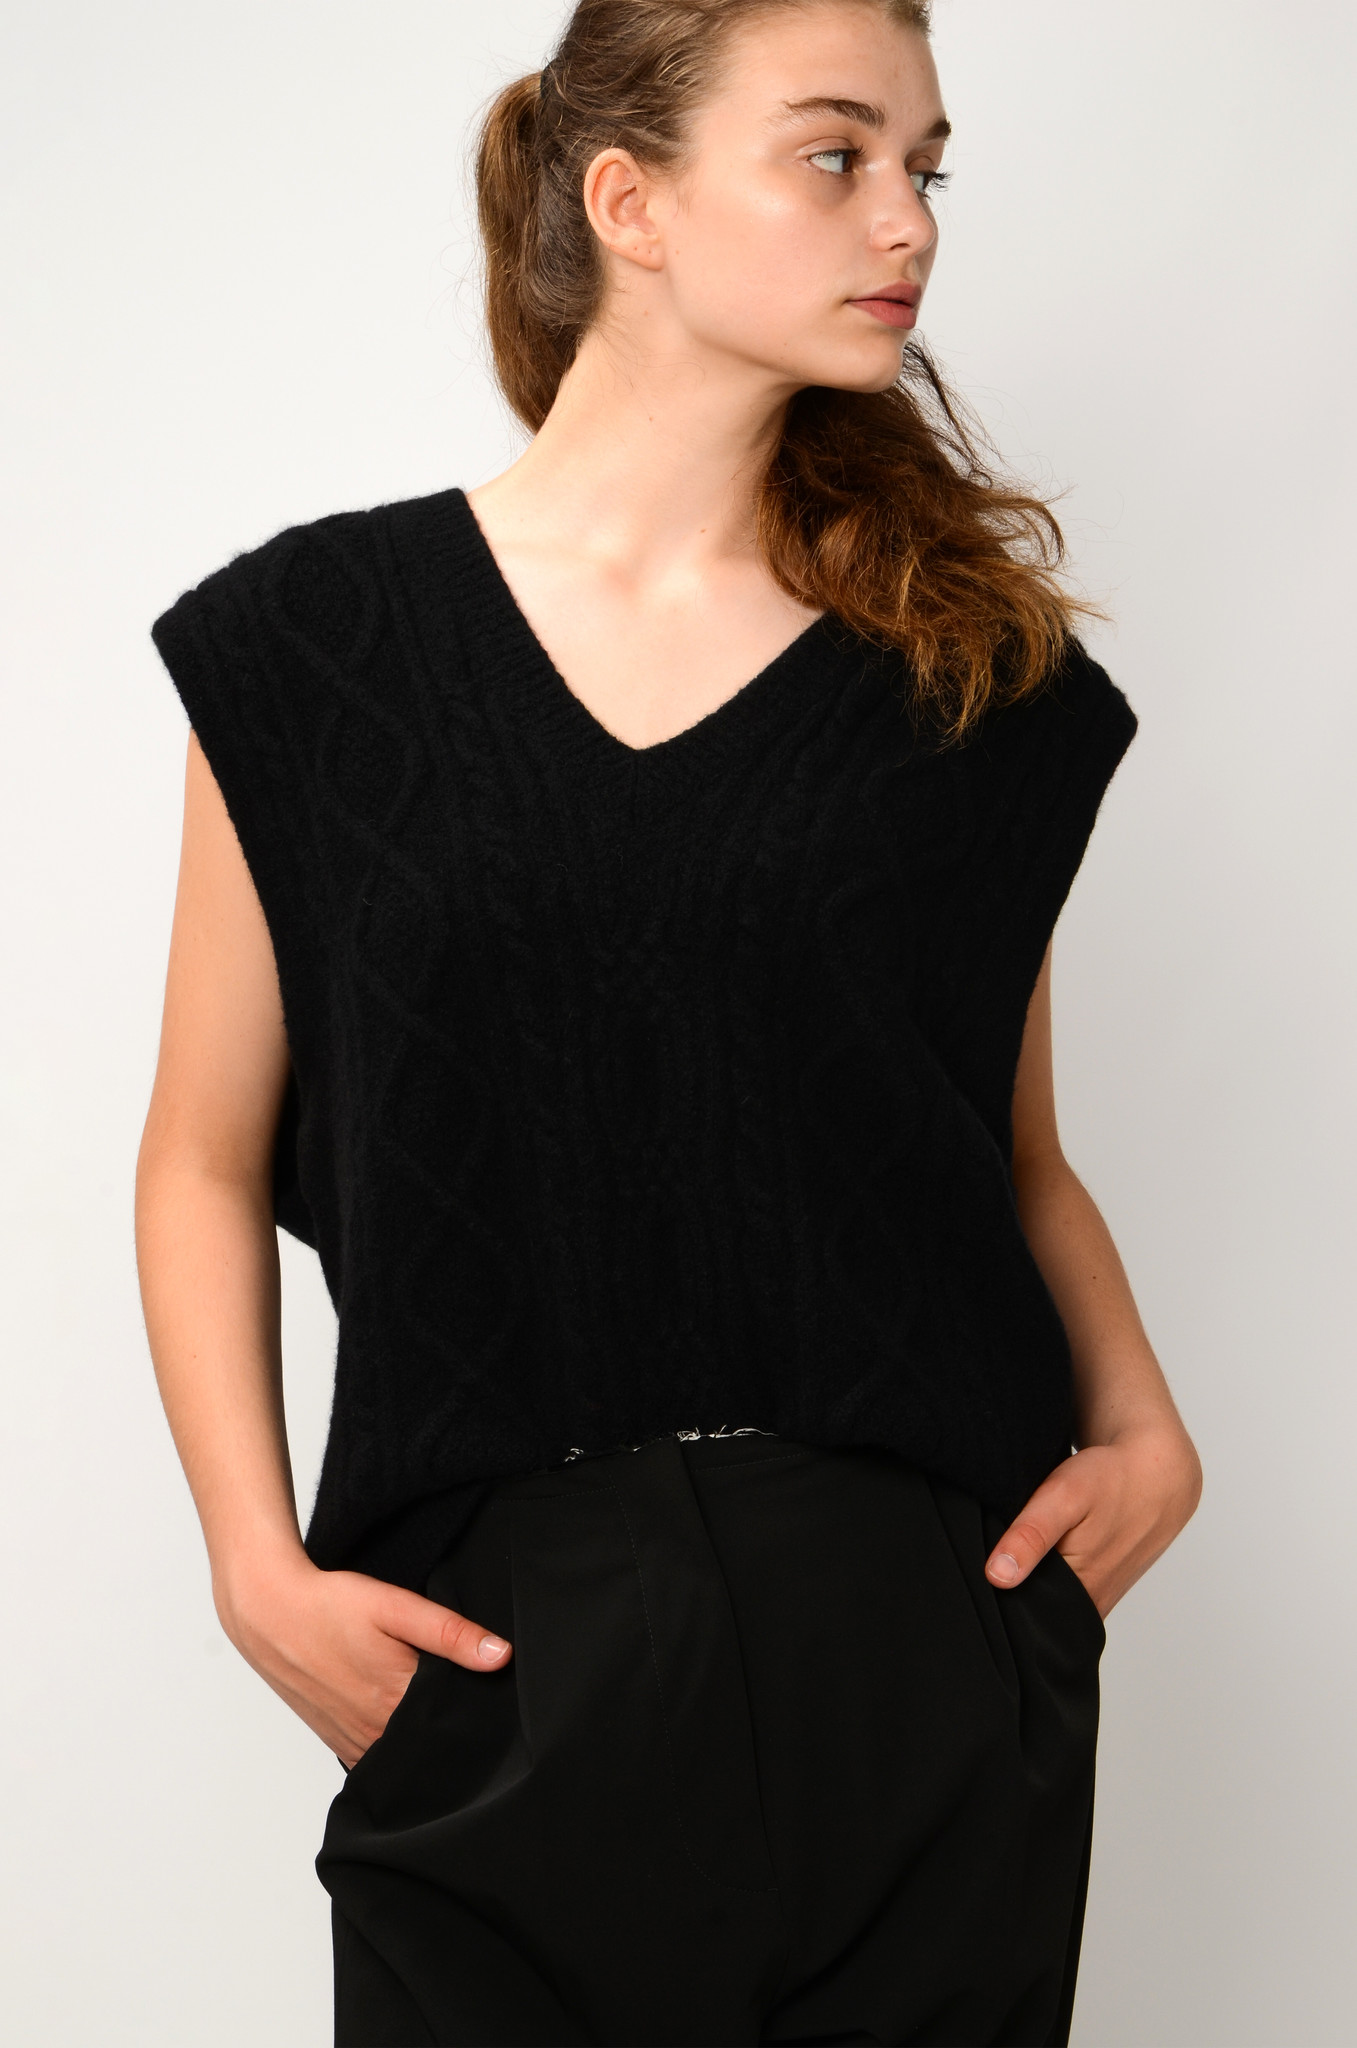 TED VEST-2